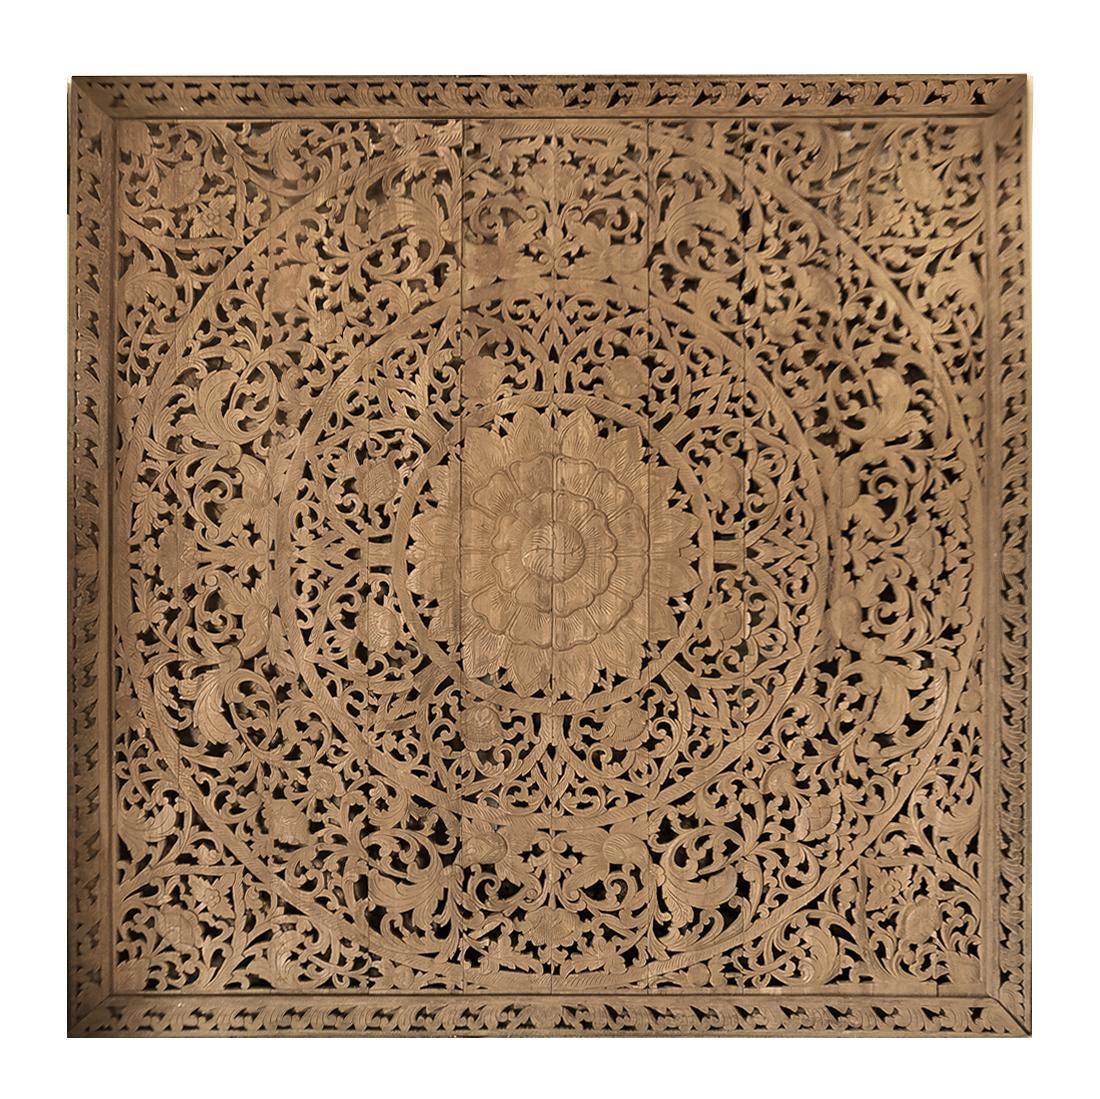 Large Grand Carved Wooden Wall Art Or Ceiling Panel – Siam Sawadee Intended For Wood Carved Wall Art Panels (Image 9 of 20)